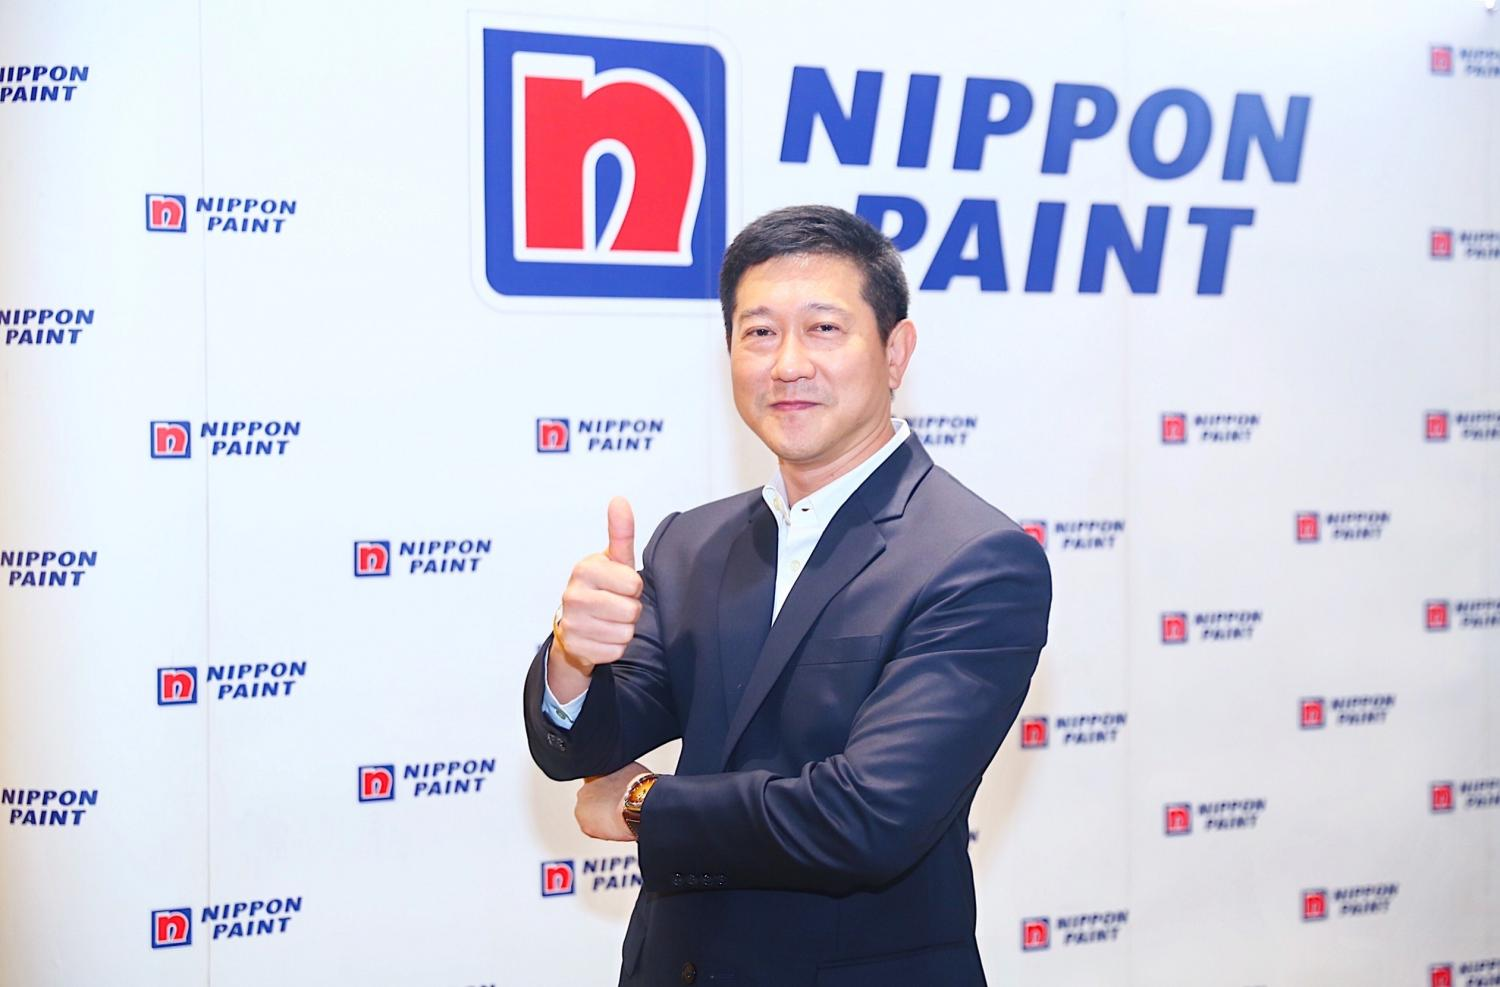 Mr Watchara says Nippon Paint will lean more on government projects starting this year.